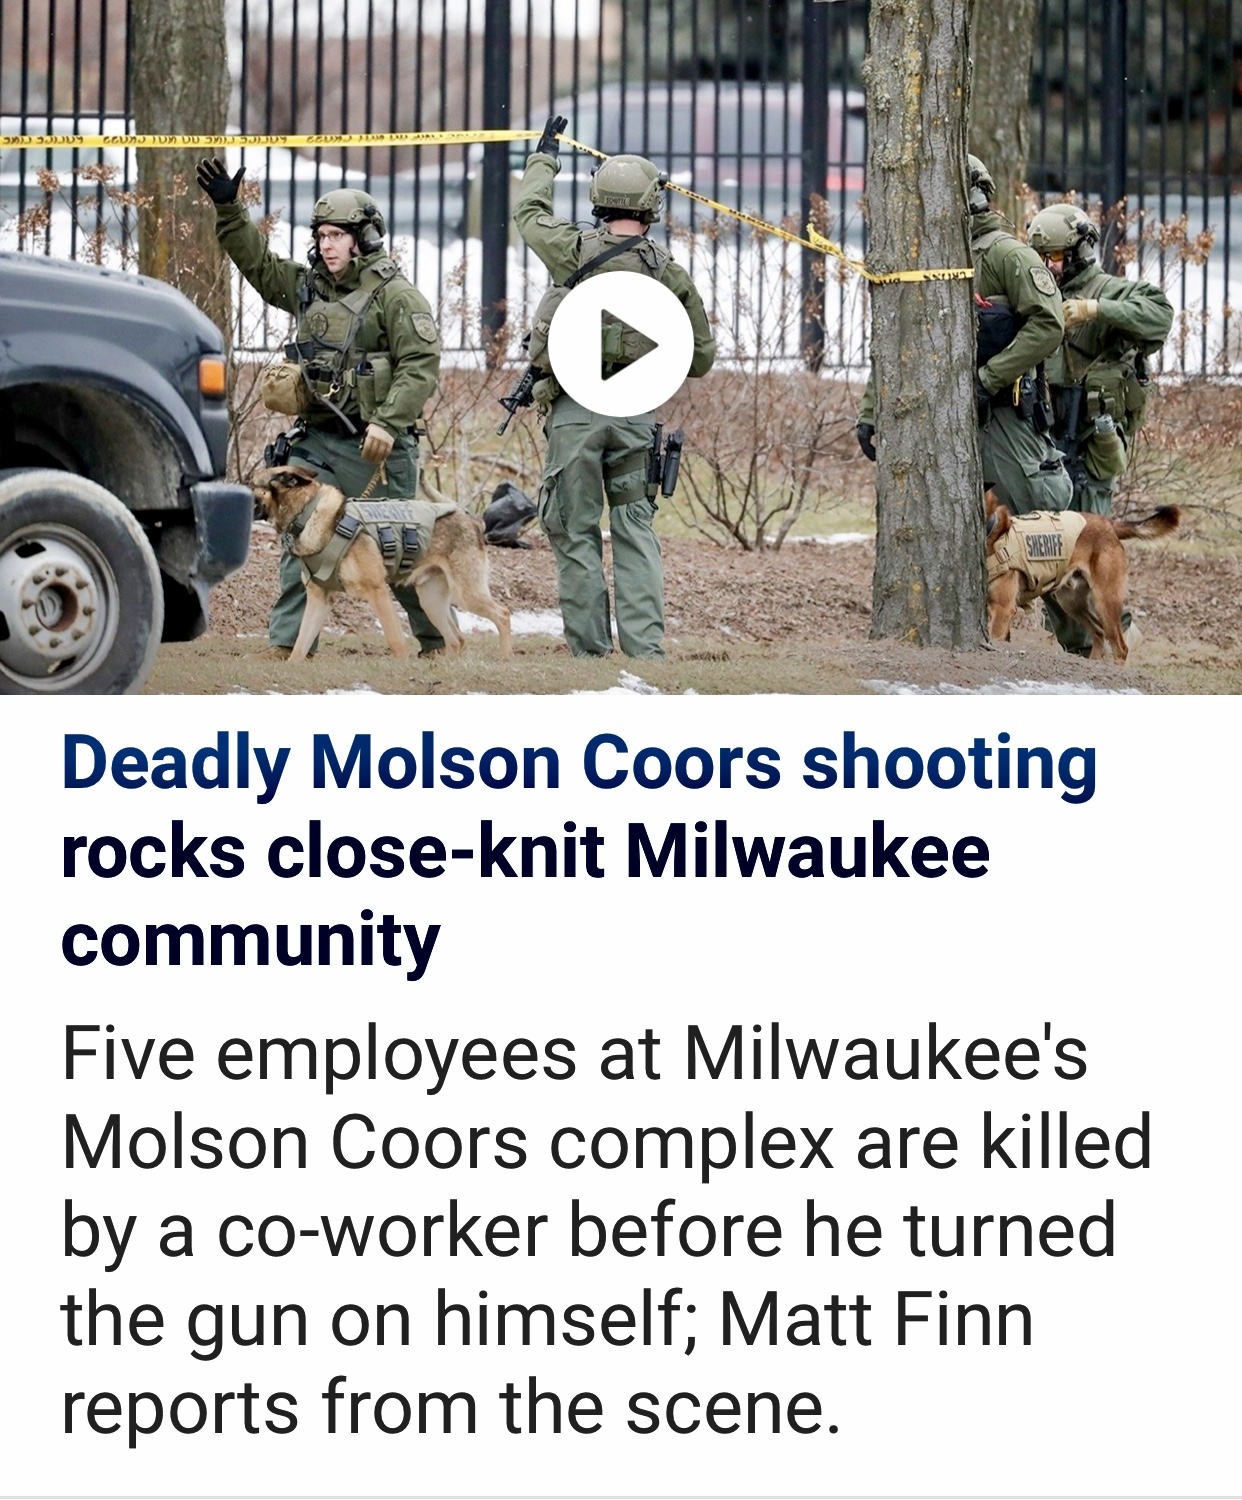 Breaking News 6 Employees Dead In Shooting At Molson Coors In Milwaukee